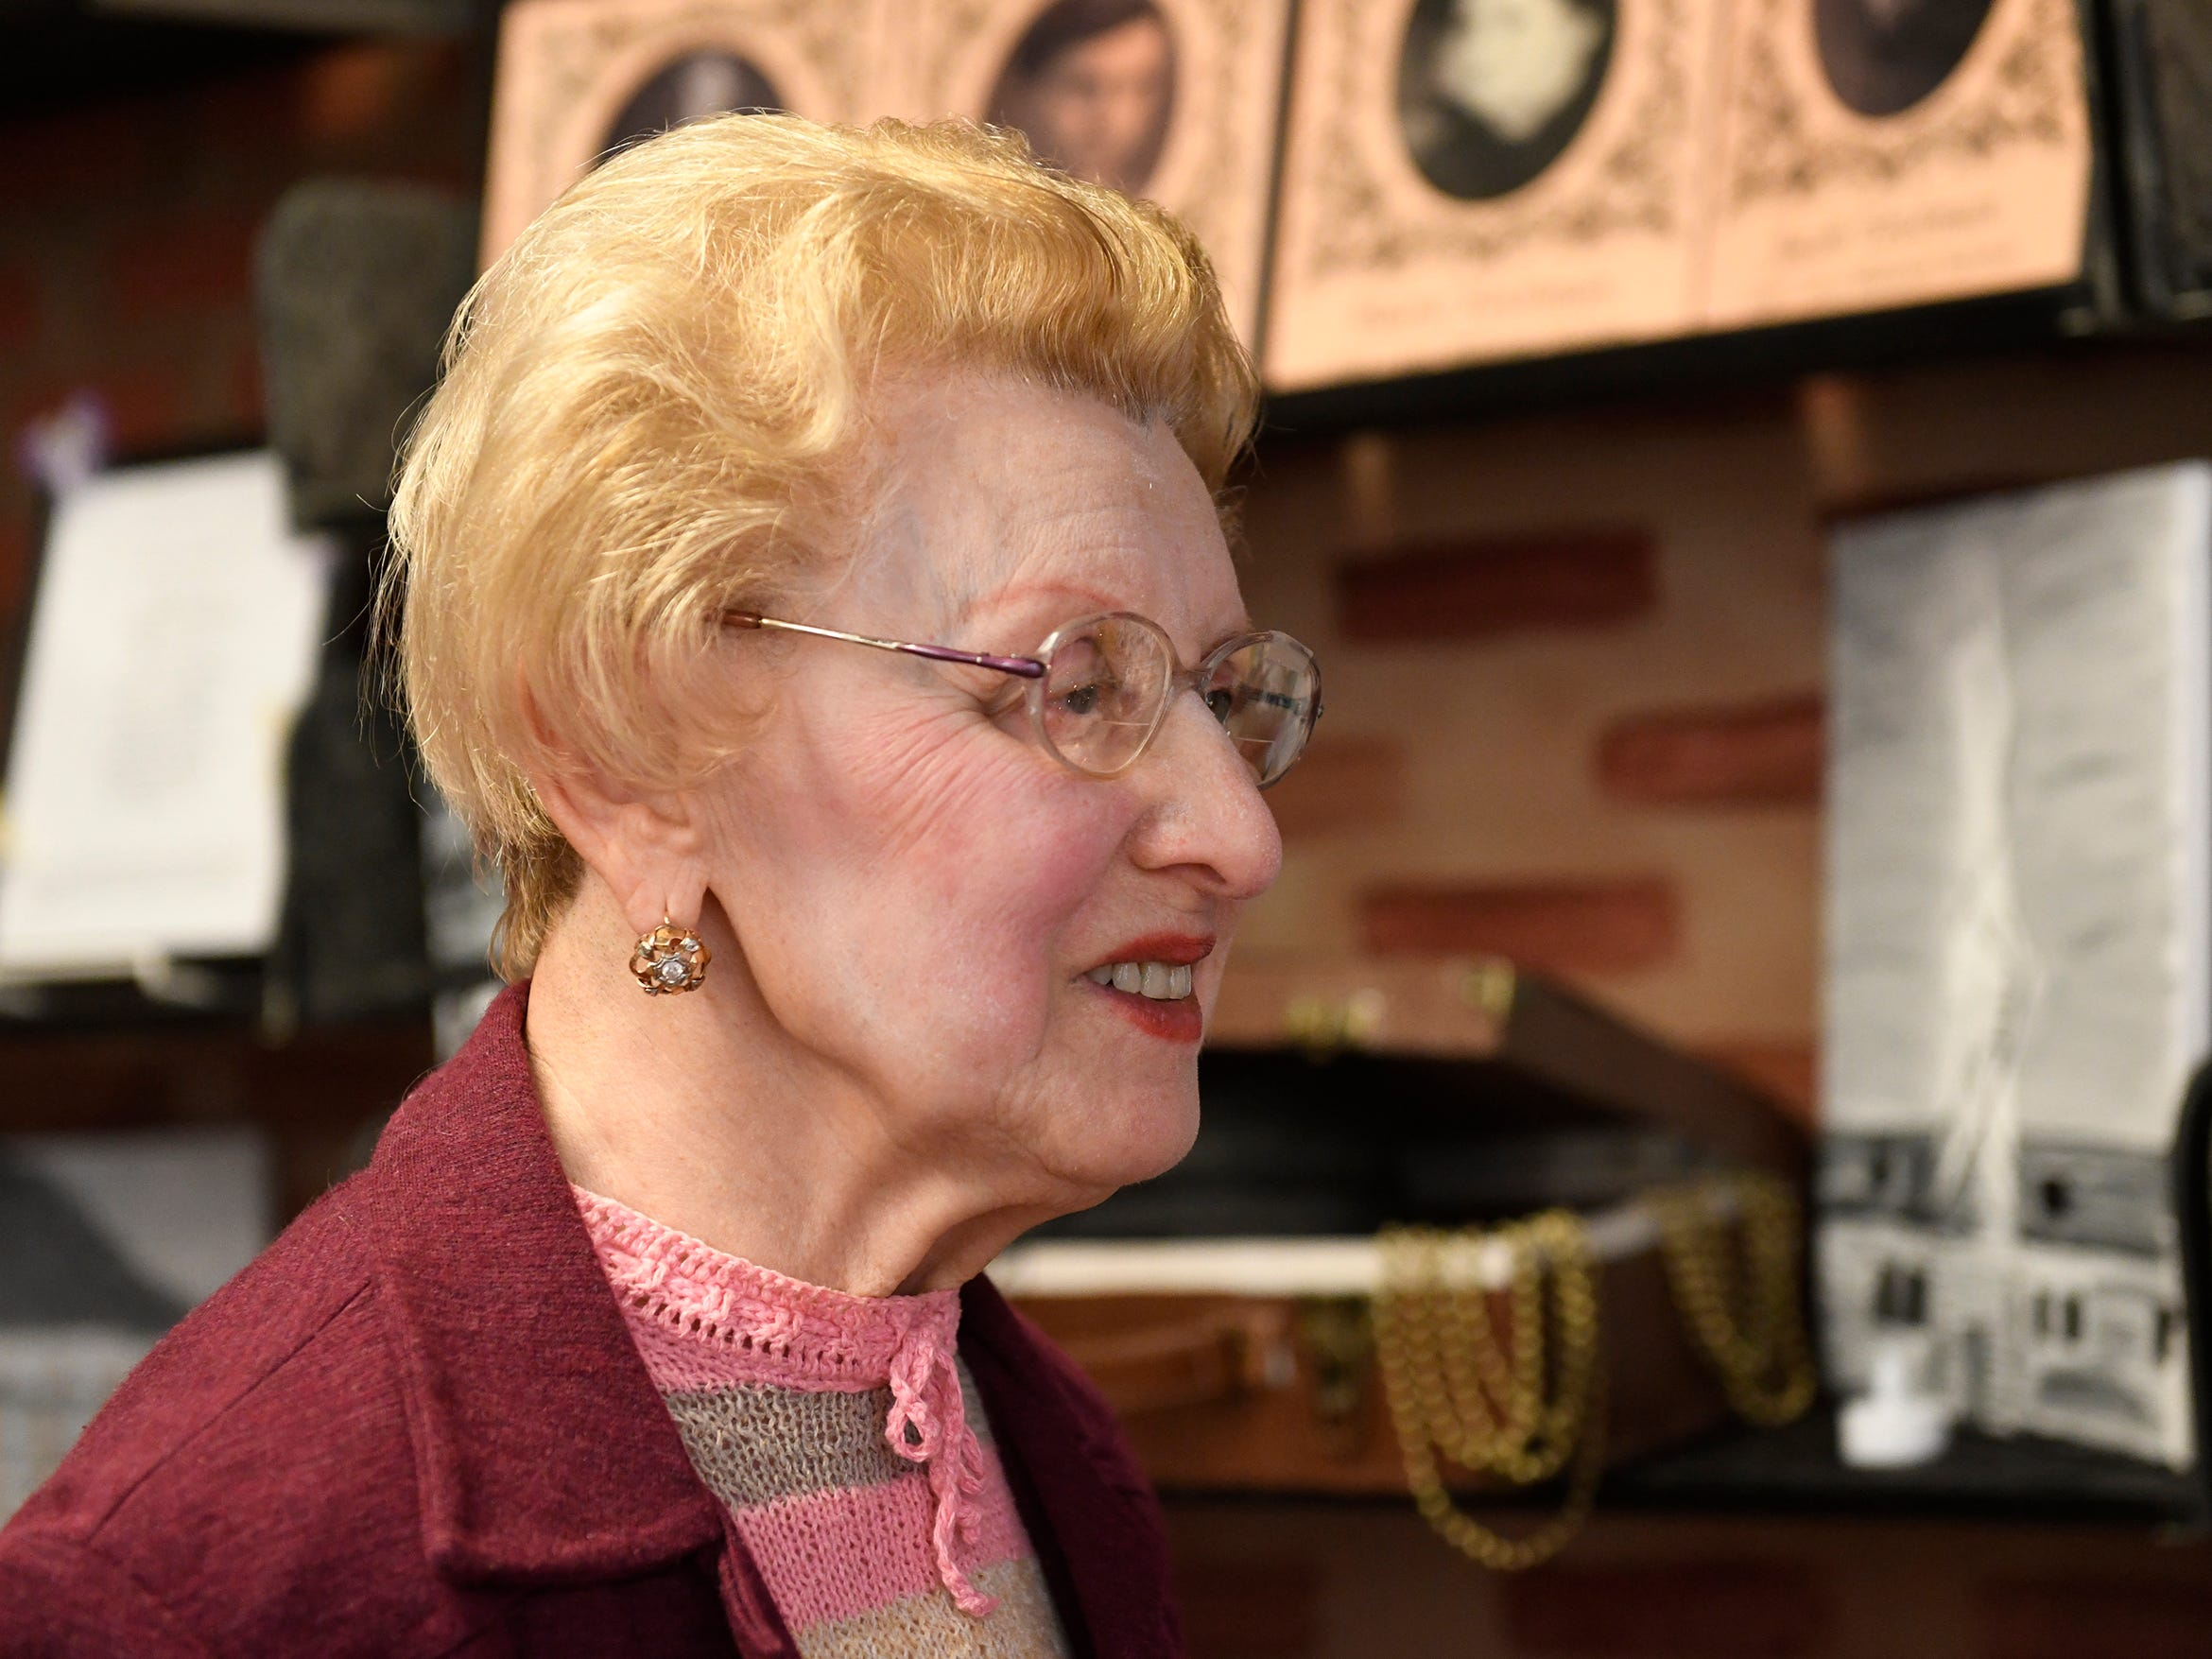 Holocaust survivor Genia Kuhnreich attends the Kuhnreich/Teichman/Media Holocaust Research Center and Permanent Exhibit unveiling at Vineland High School on Wednesday, May 8, 2019.